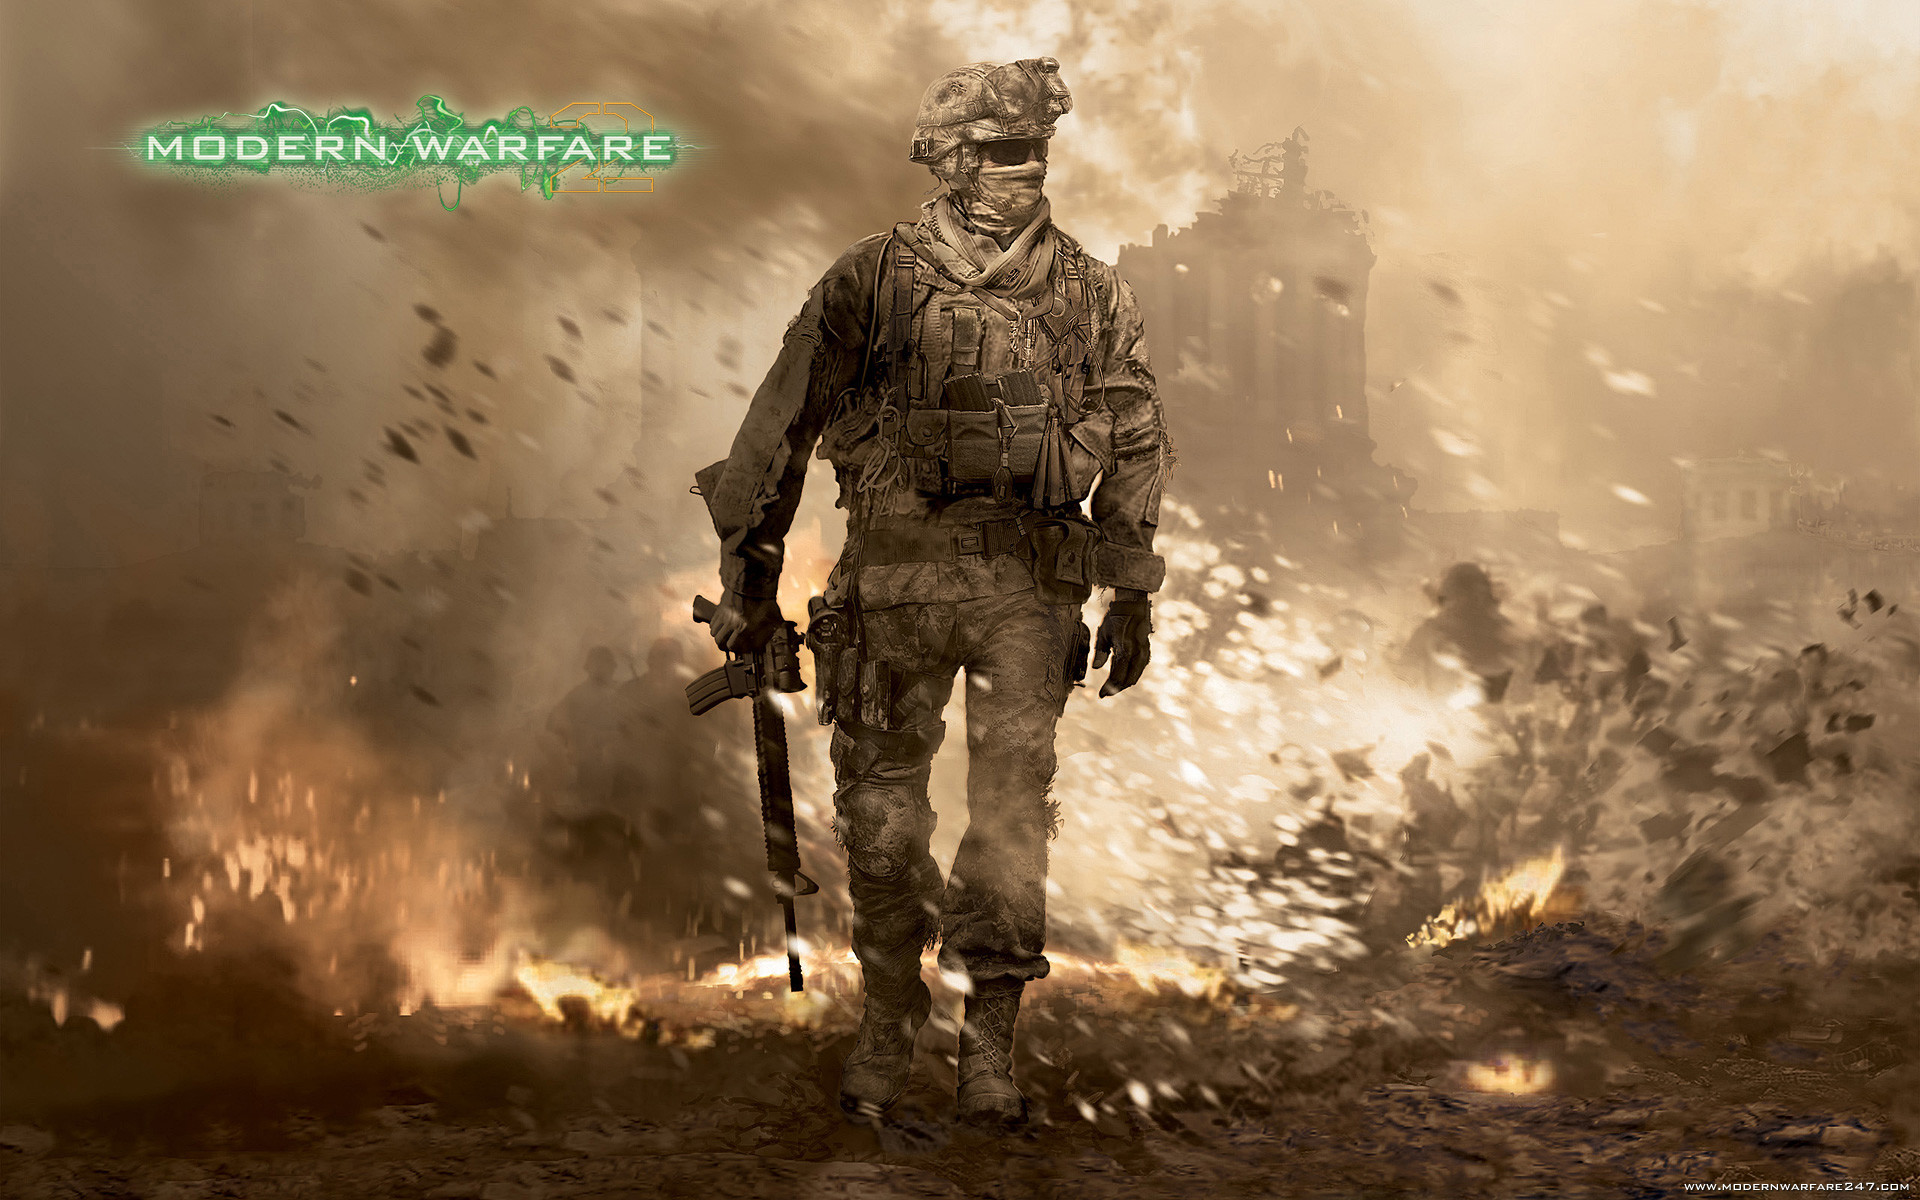 Previous: Call of Duty: MW 2 [2] …